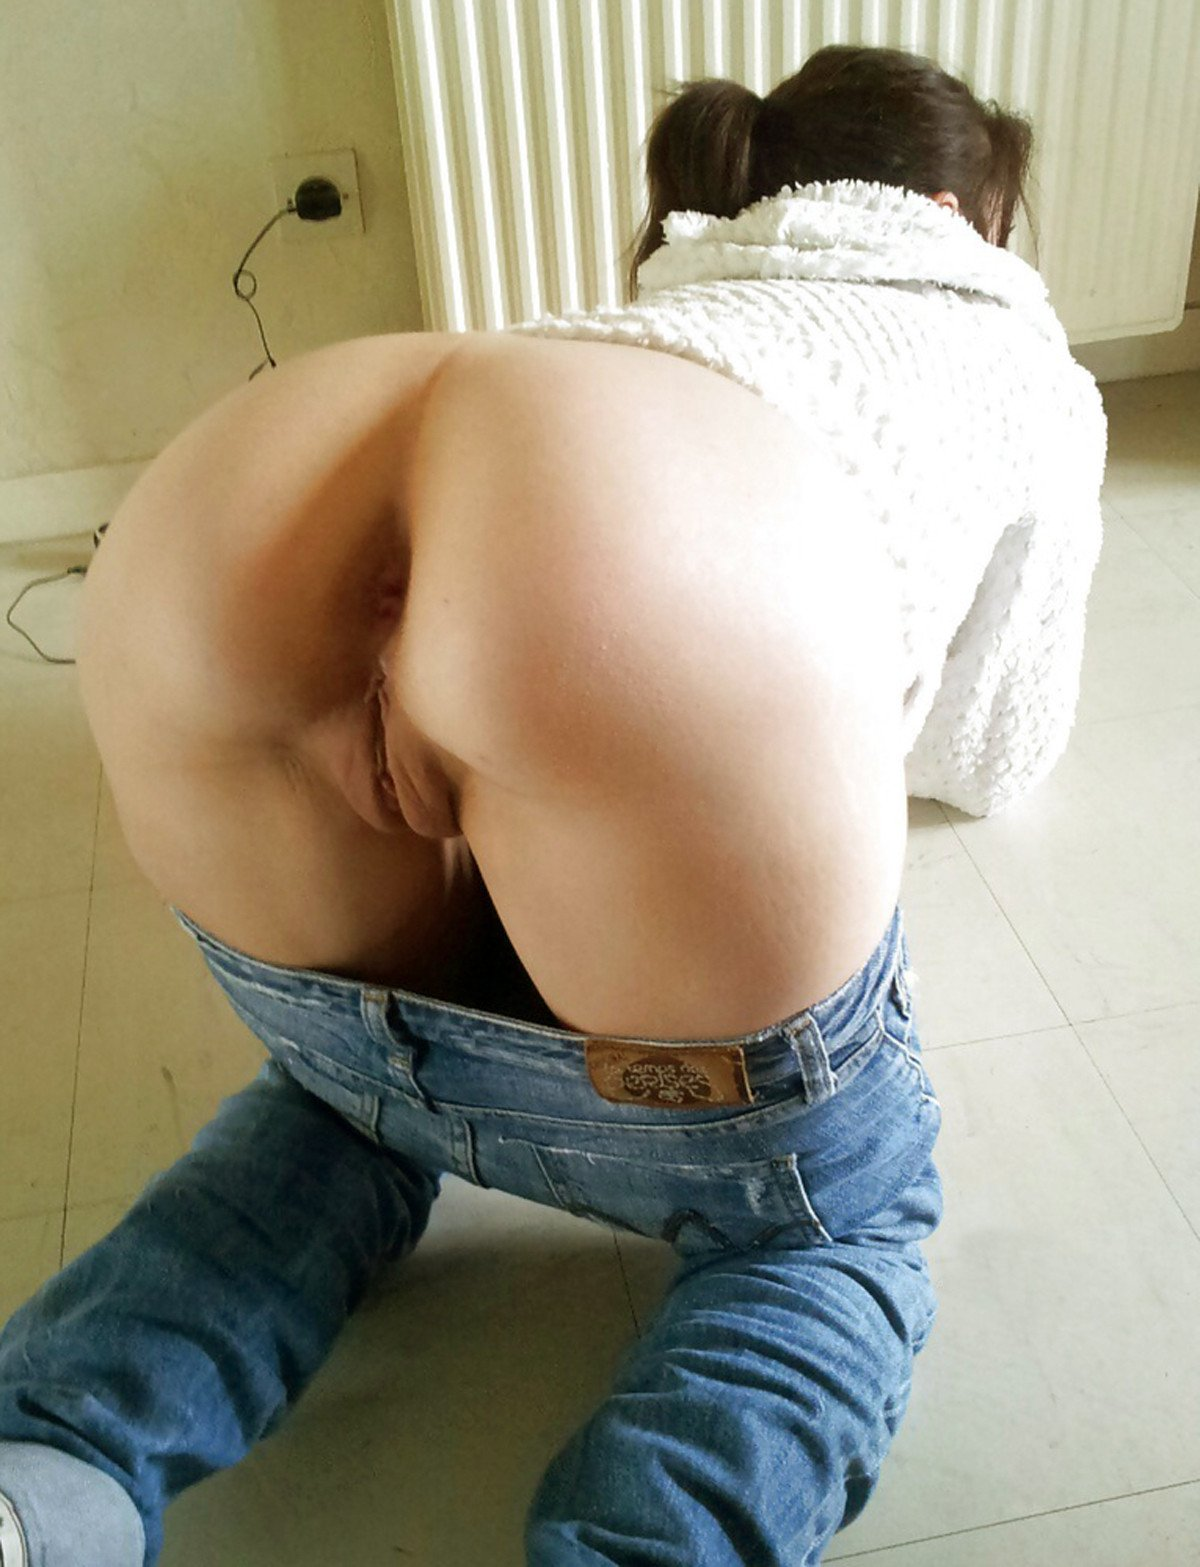 Huge amateur ass in jeans